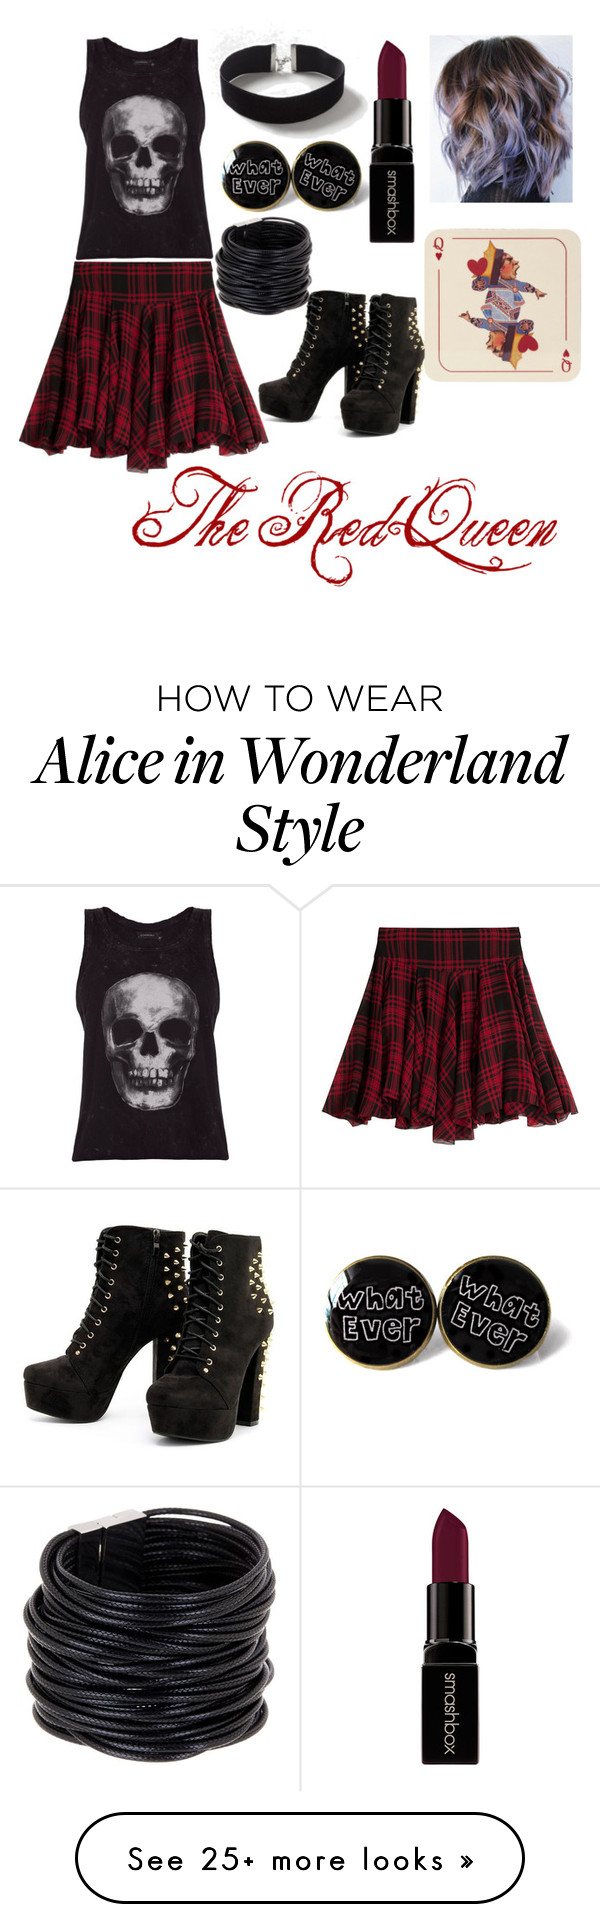 """the red queen"" by michaelabradham on Polyvore featuring Avenida Home, ElevenParis, Saachi, Polo Ralph Lauren, Smashbox, GetTheLook and airportstyle"